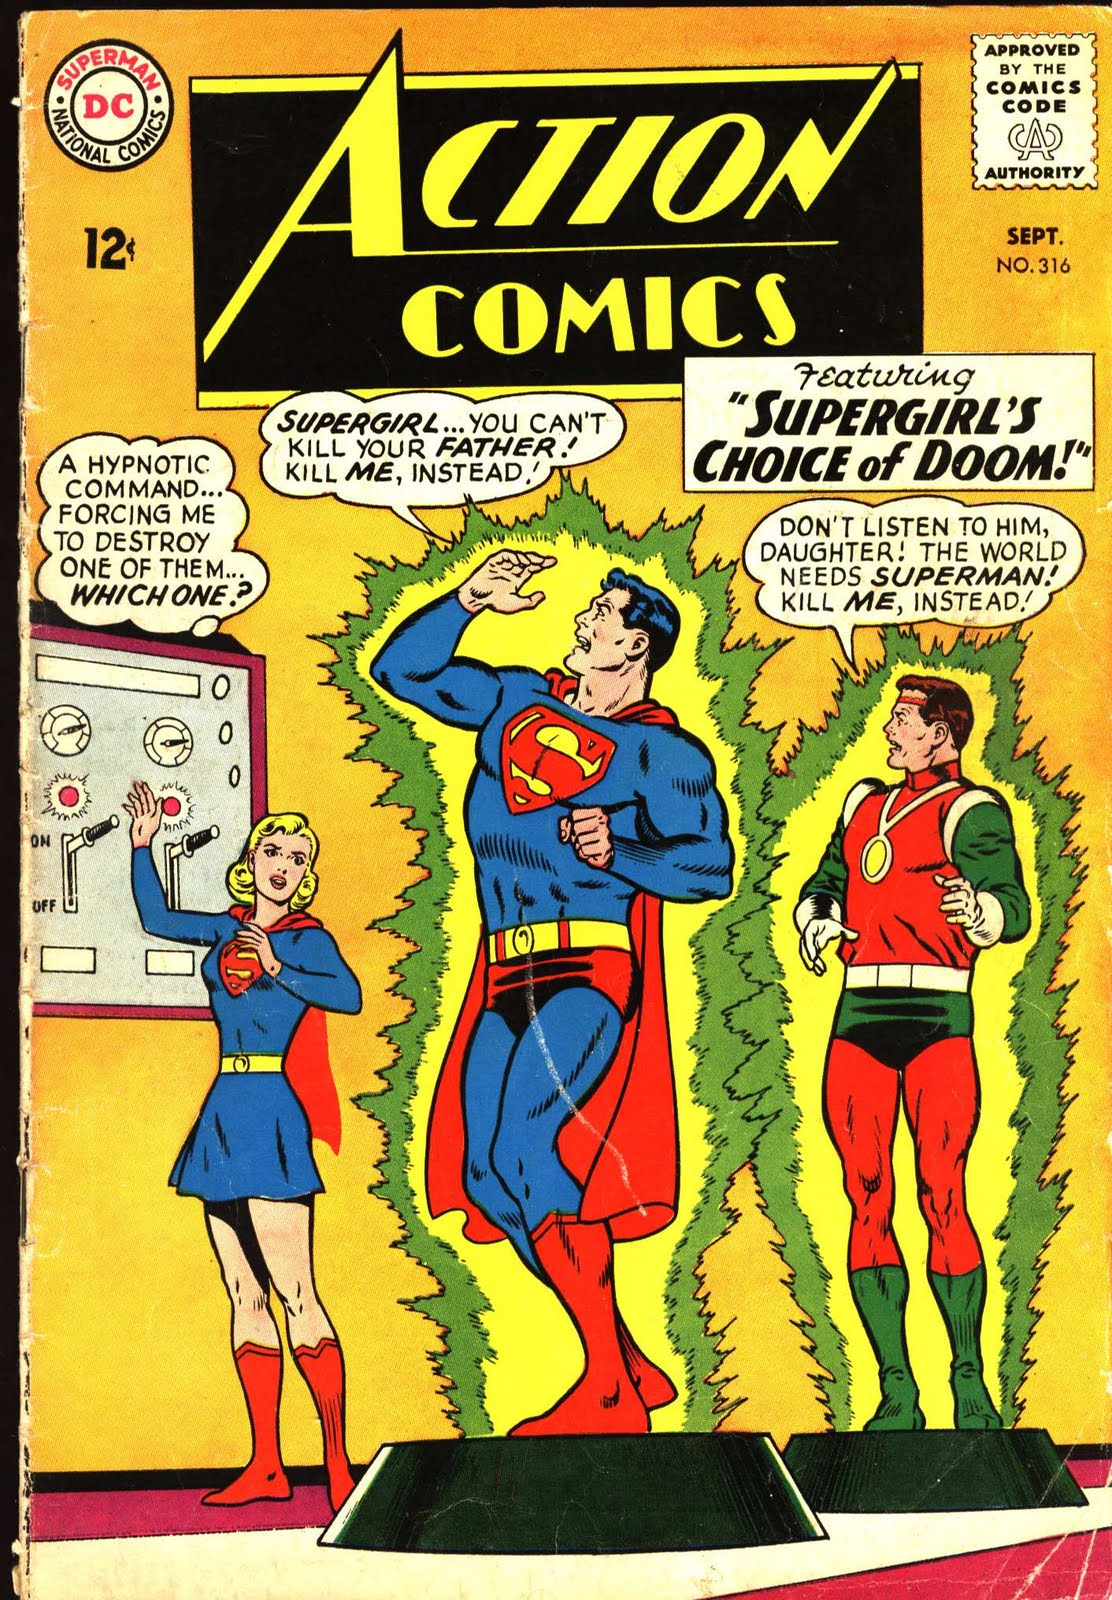 Supergirl: The Maiden of Might: Action Comics #316